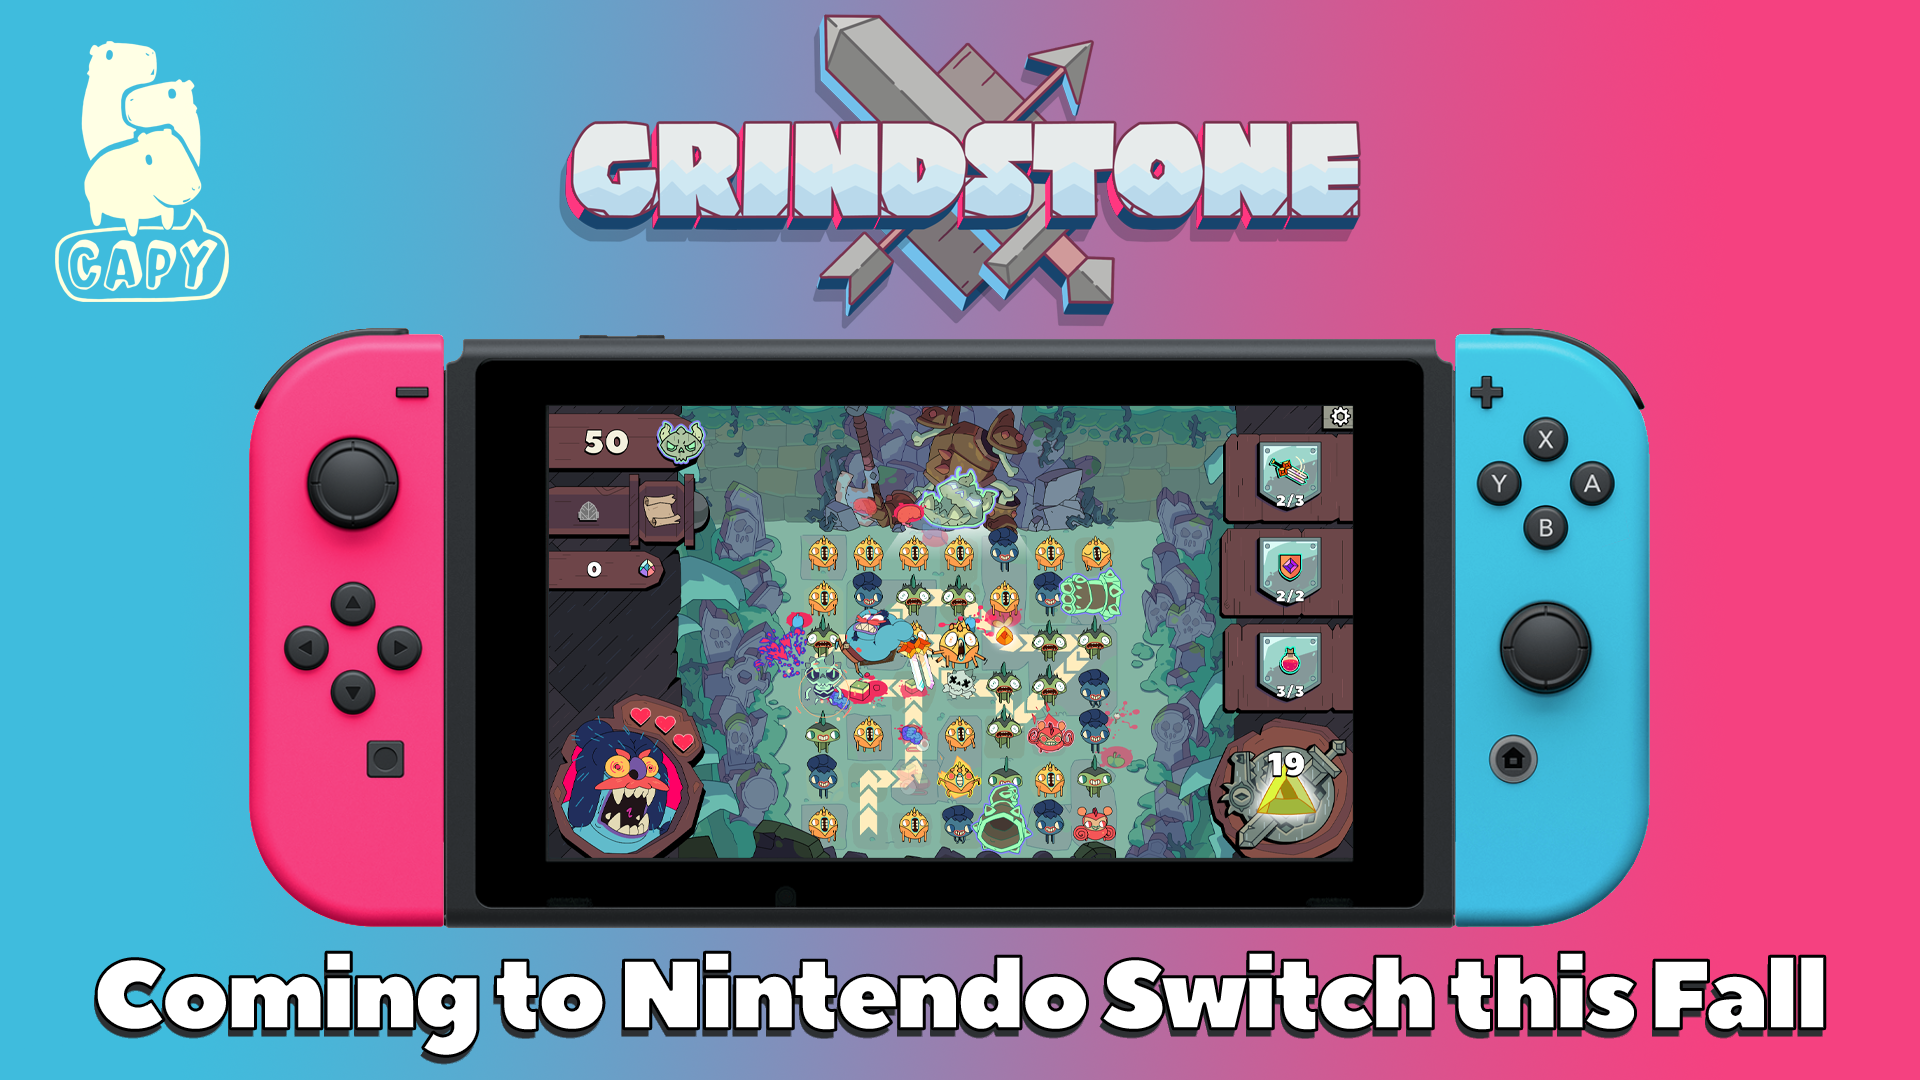 GRINDSTONE is headed to the Switch Fall 2020